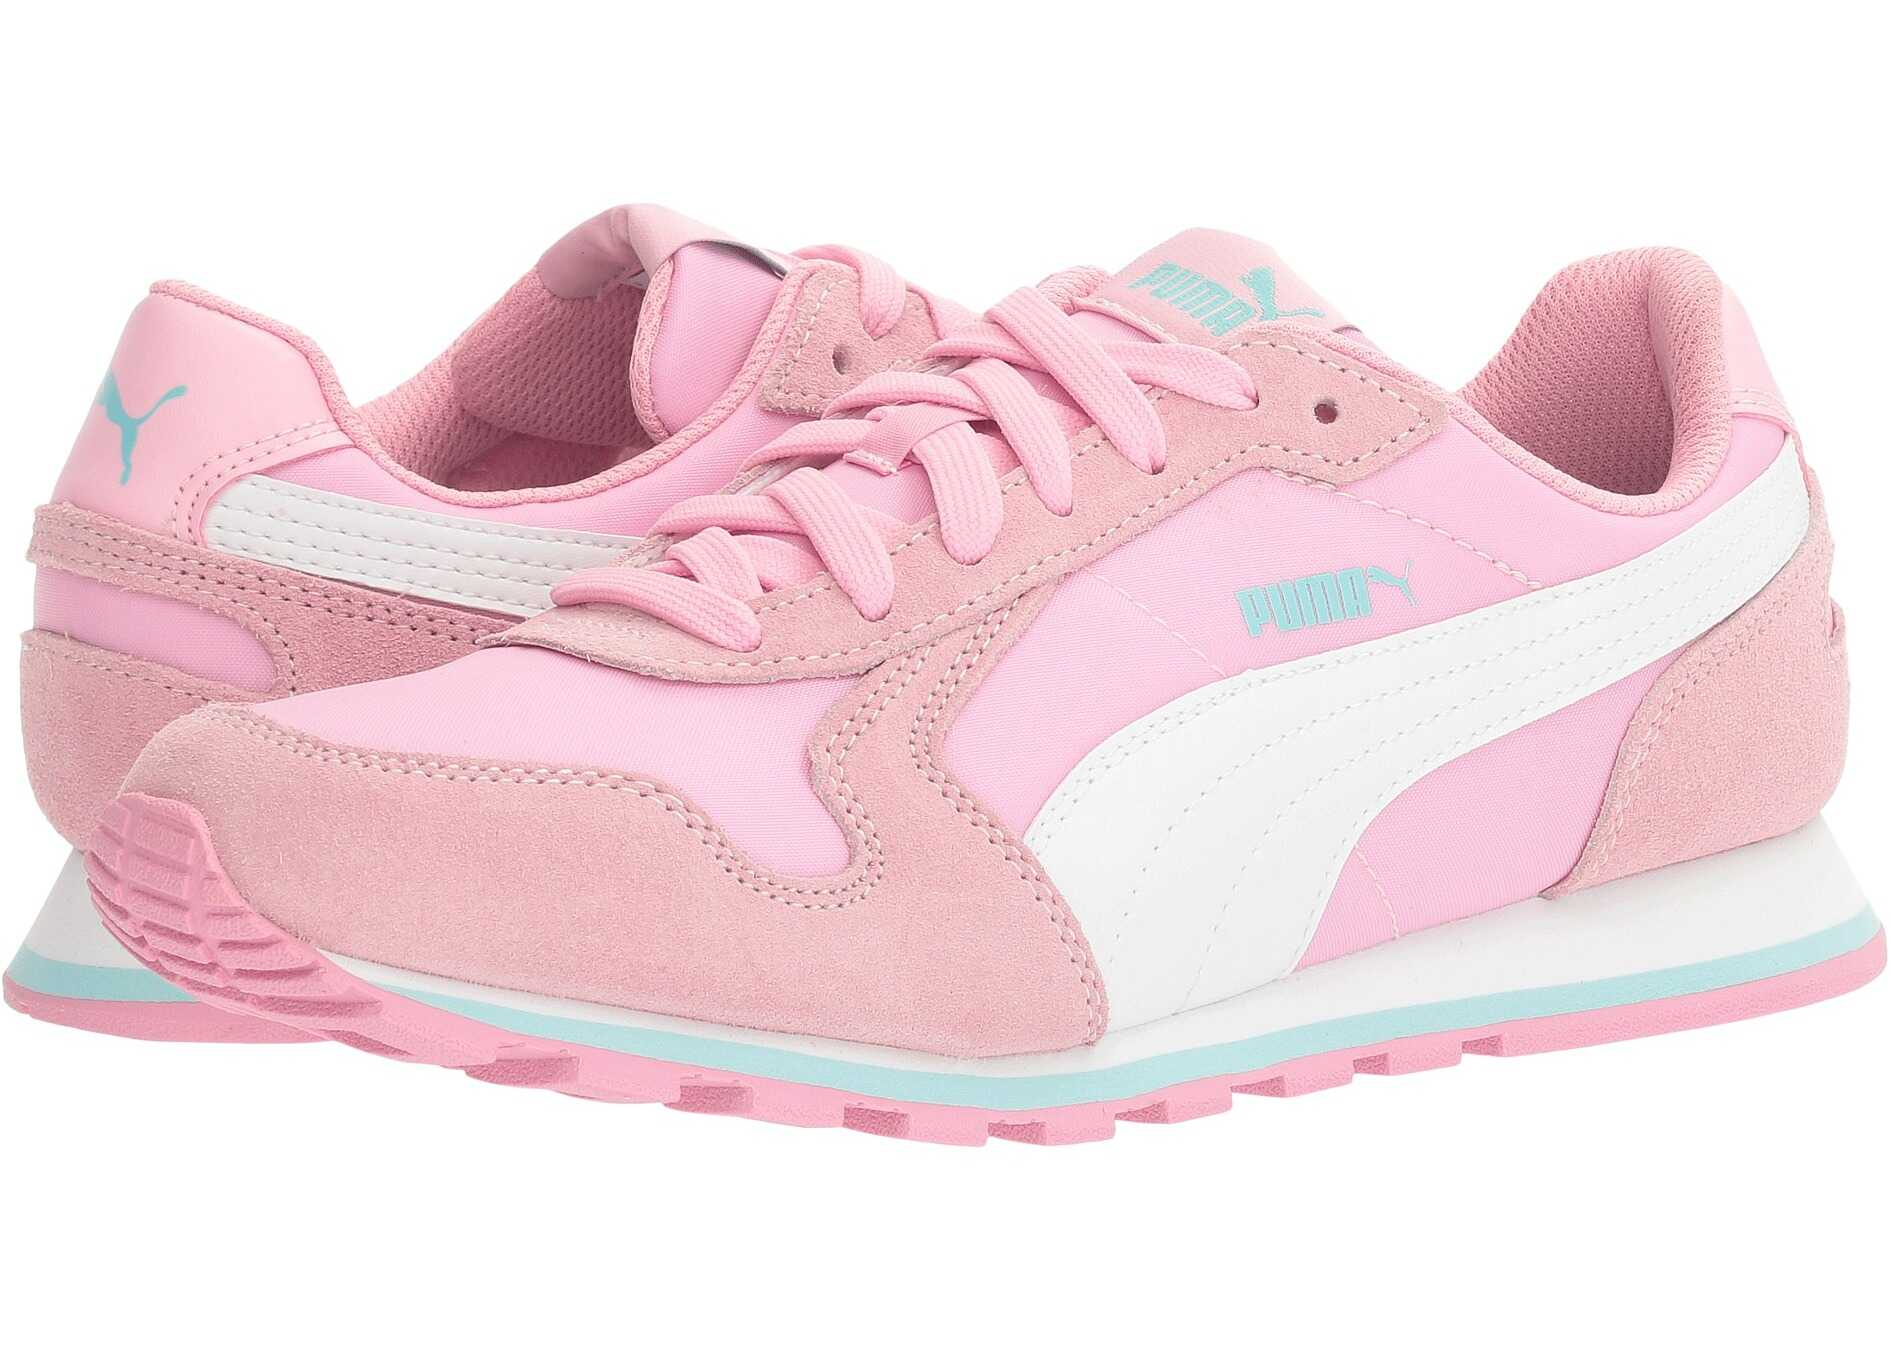 Puma Kids ST Runner NL Jr (Big Kid) Prism Pink/Puma White